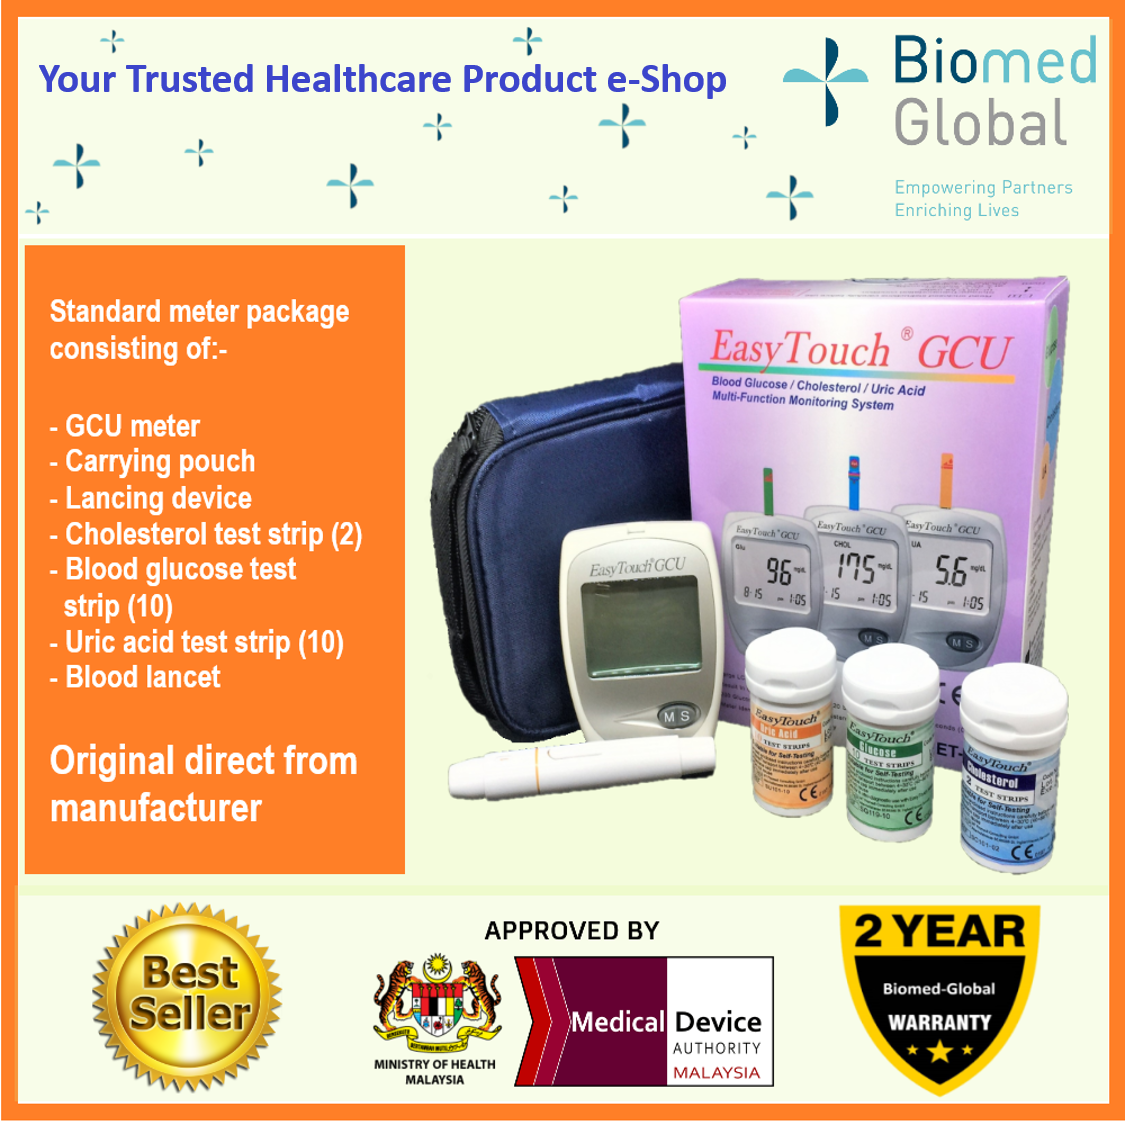 EasyTouch GCU 3-in-1 Blood Glucose, Cholesterol and Uric Acid Meter (Approved by Malaysia Medical Device Authority)